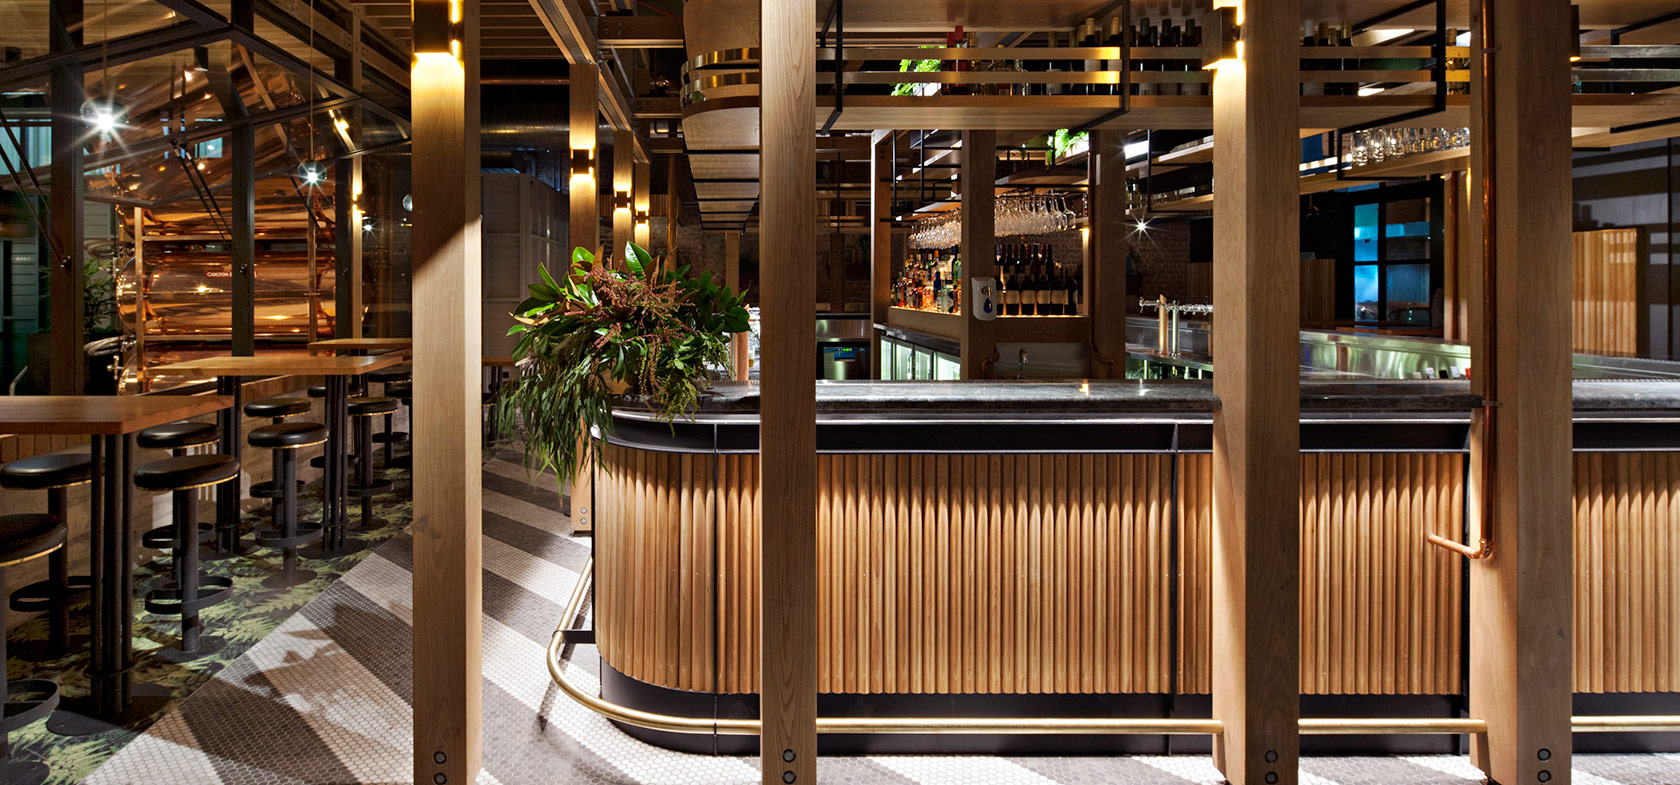 Garden State Hotel Timber Joinery Bar Hospitality Fitout Melbourne